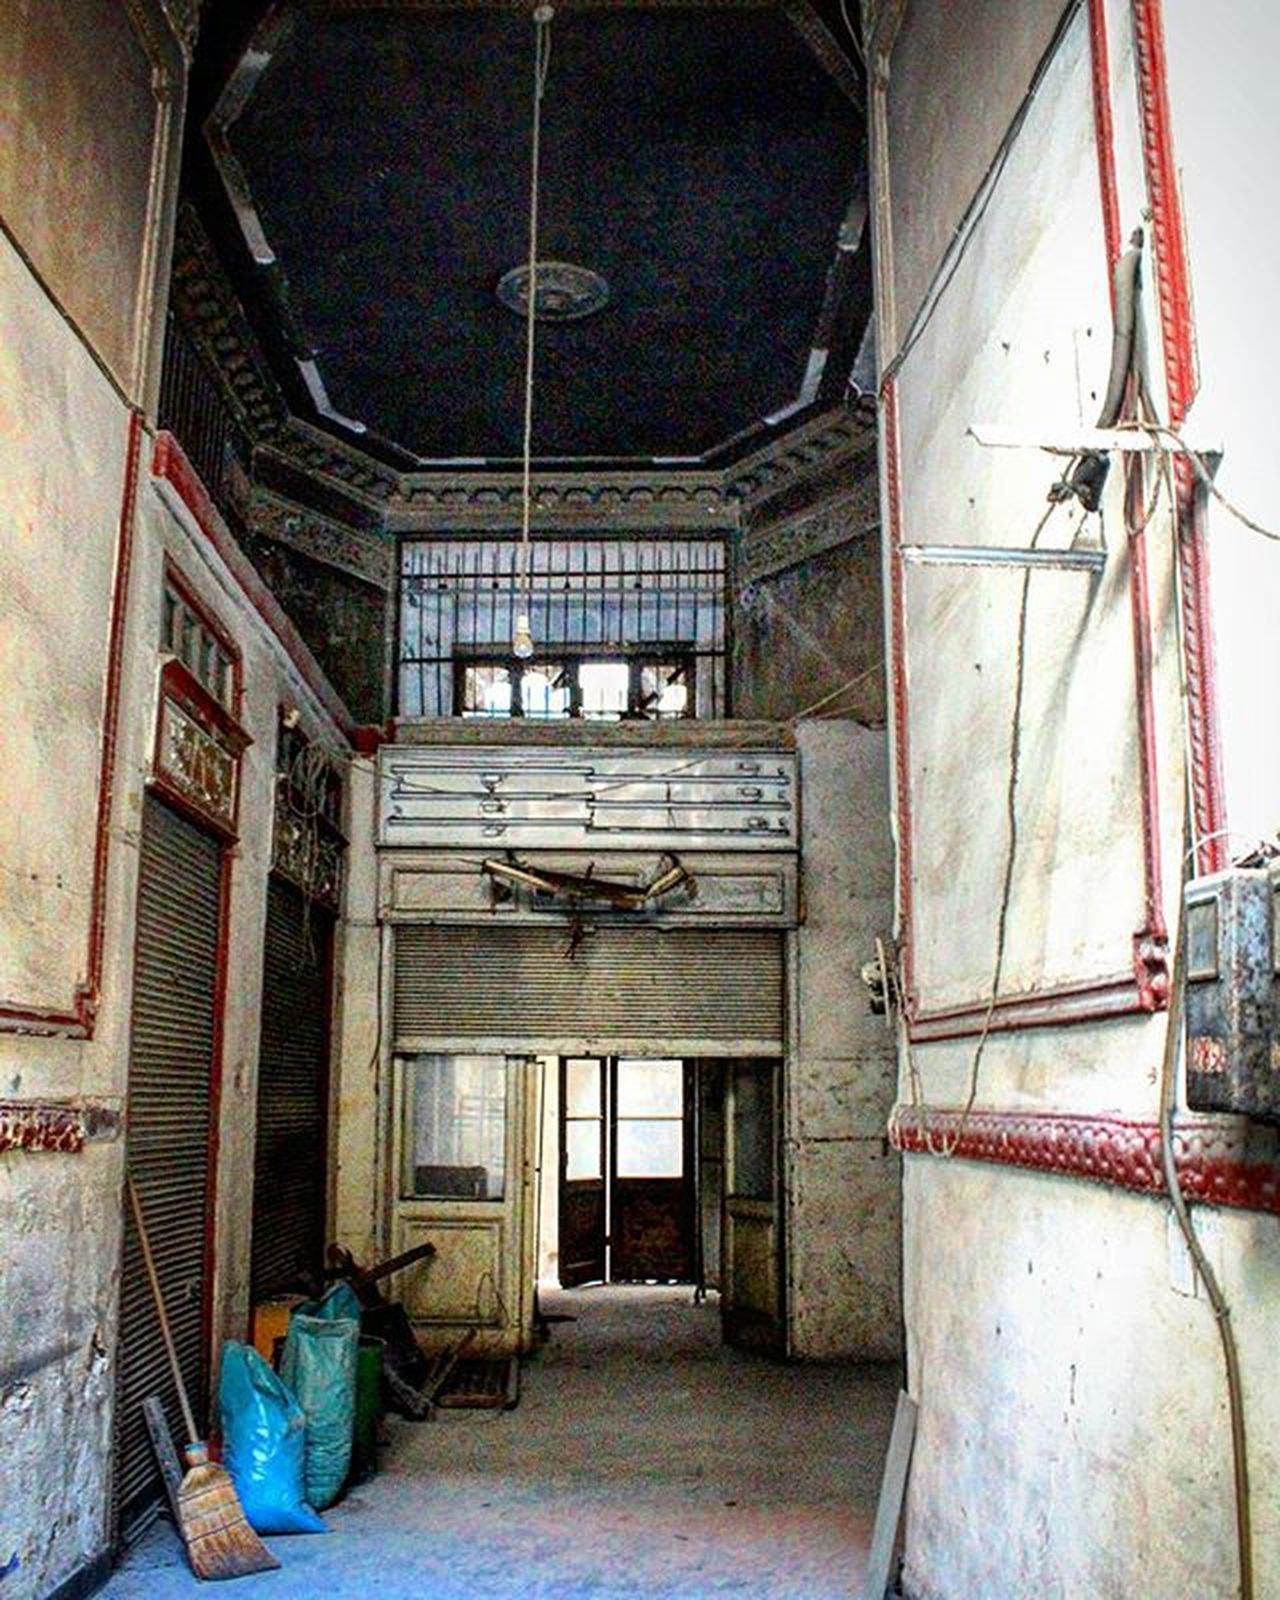 Abandoned building Old Oldmarket Architecture Tall Windows Lights Pipes Bags Office Store Merchandise Industrialbuilding Downtown City center Streetphotography Photography Canon700D Thessaloniki Greece Skg